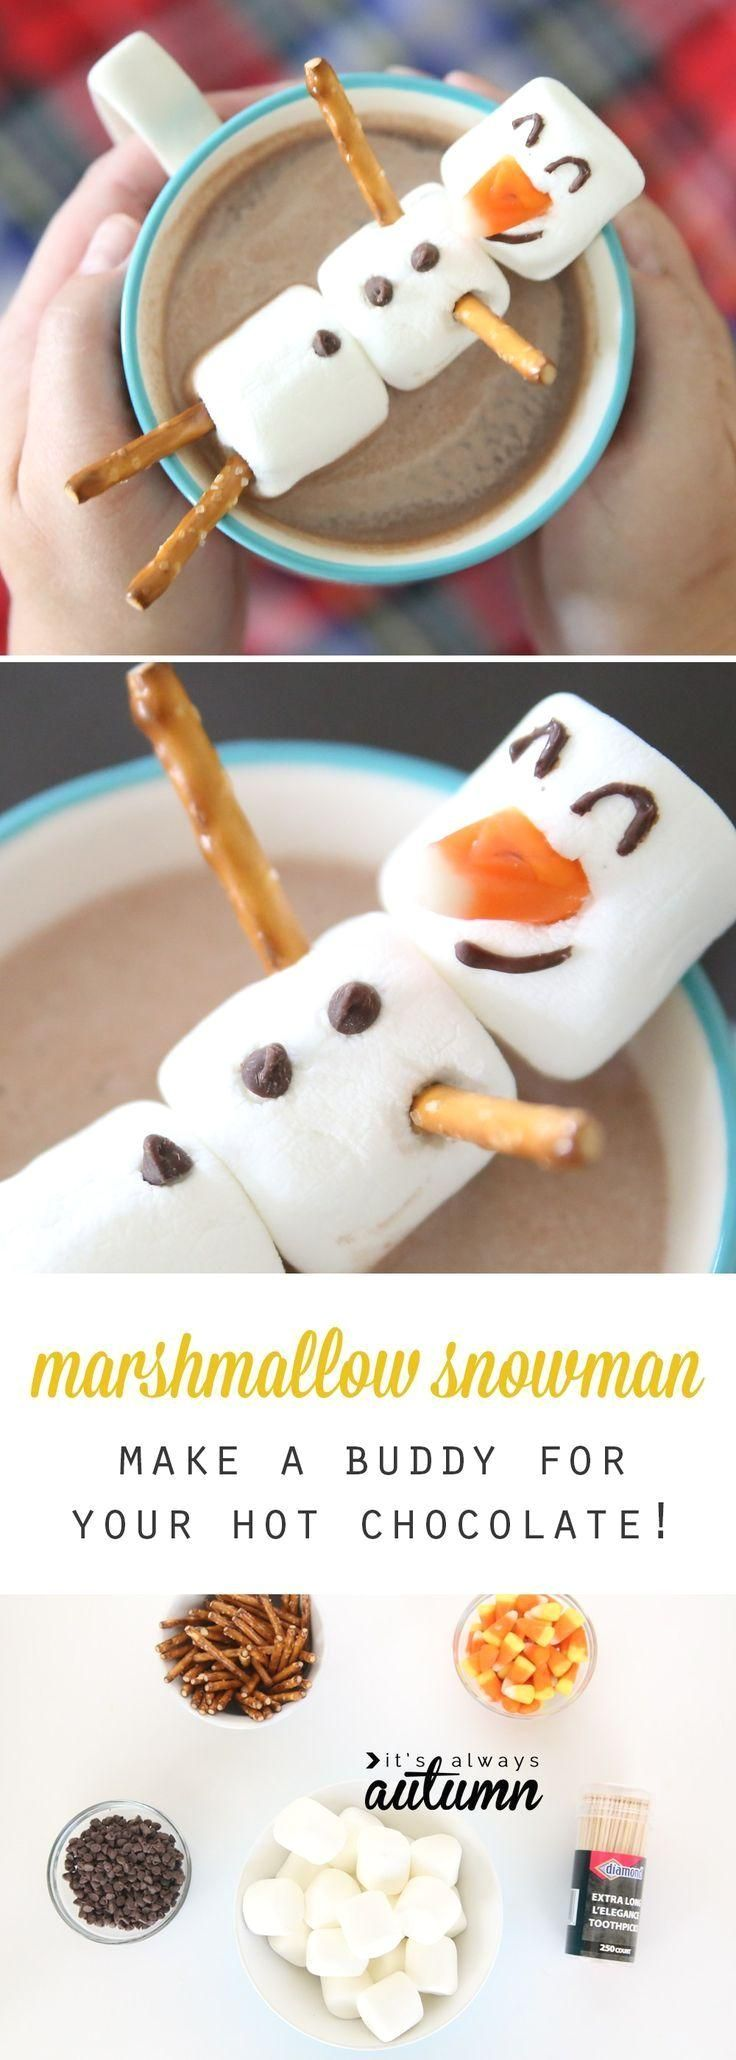 Over 30 Winter Themed Fun Food Ideas and Easy Crafts Kids Can Make : Over 30 Easy Winter themed crafts for kids to make  and fun food treat ideas to brighten the house and classroom! Perfect for winter parties. www.kidfriendlyth... Over 30 Winter Themed Fun Food Ideas and Easy Crafts Kids Can Make - Perfect for school parties and preschool crafts - www.kidfriendlythingstodo.com #Over #Winter #Themed